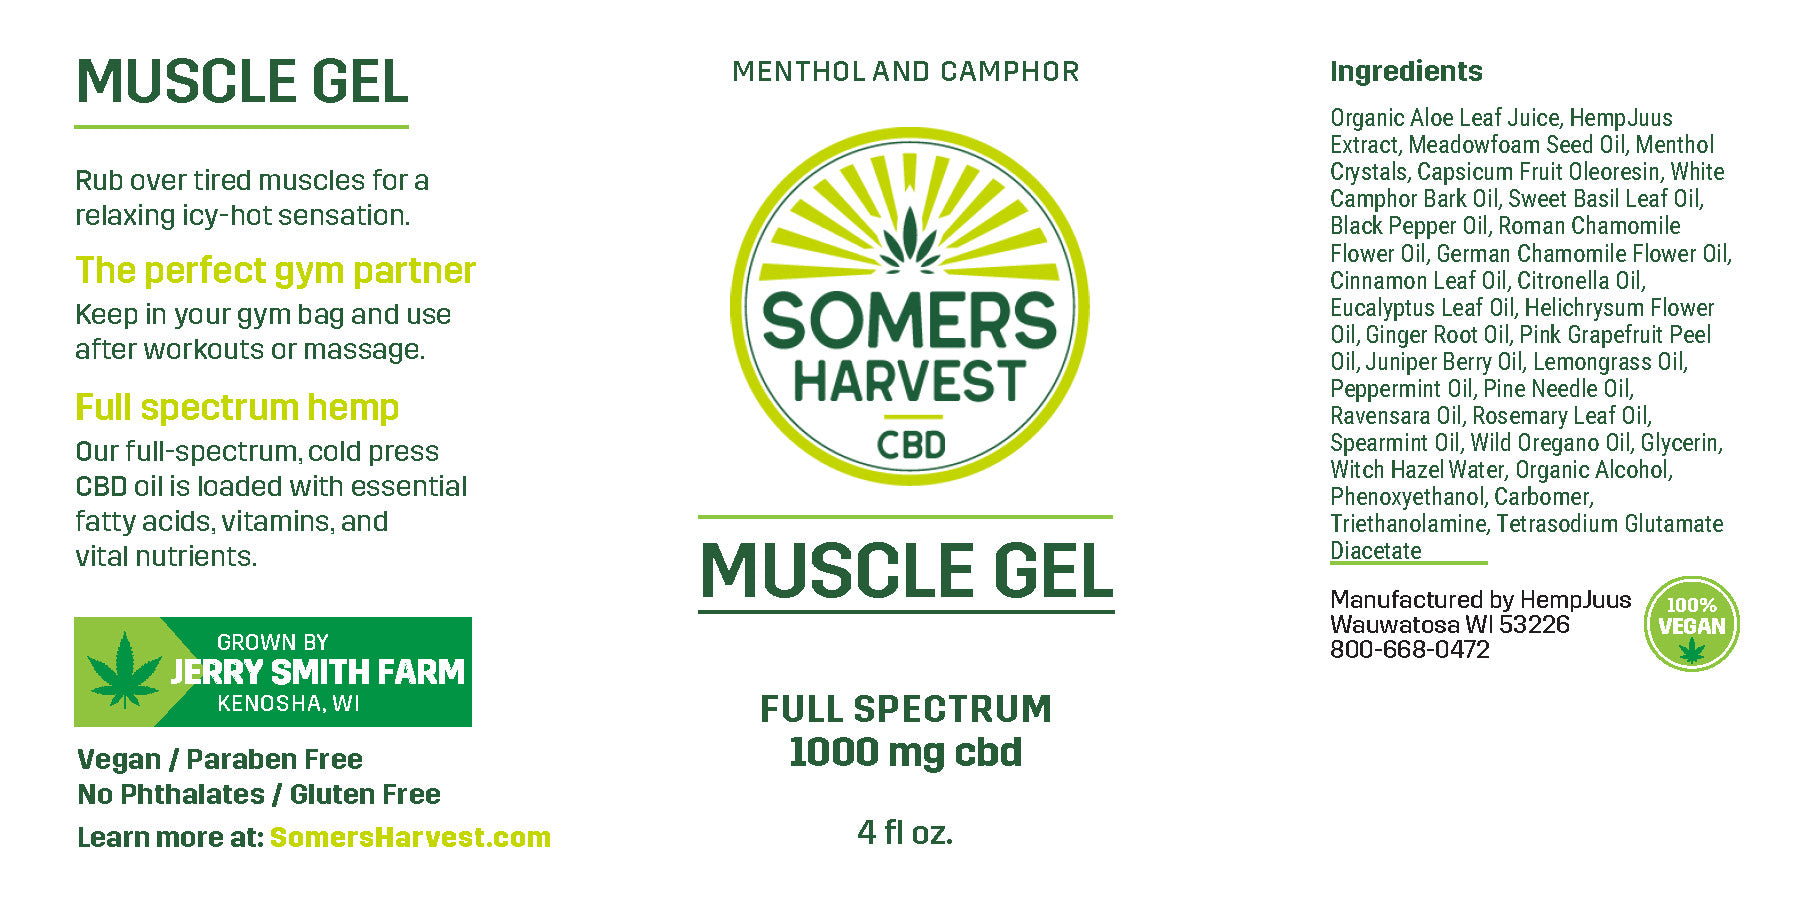 Somers Harvest CBD Muscle Gel Package Label